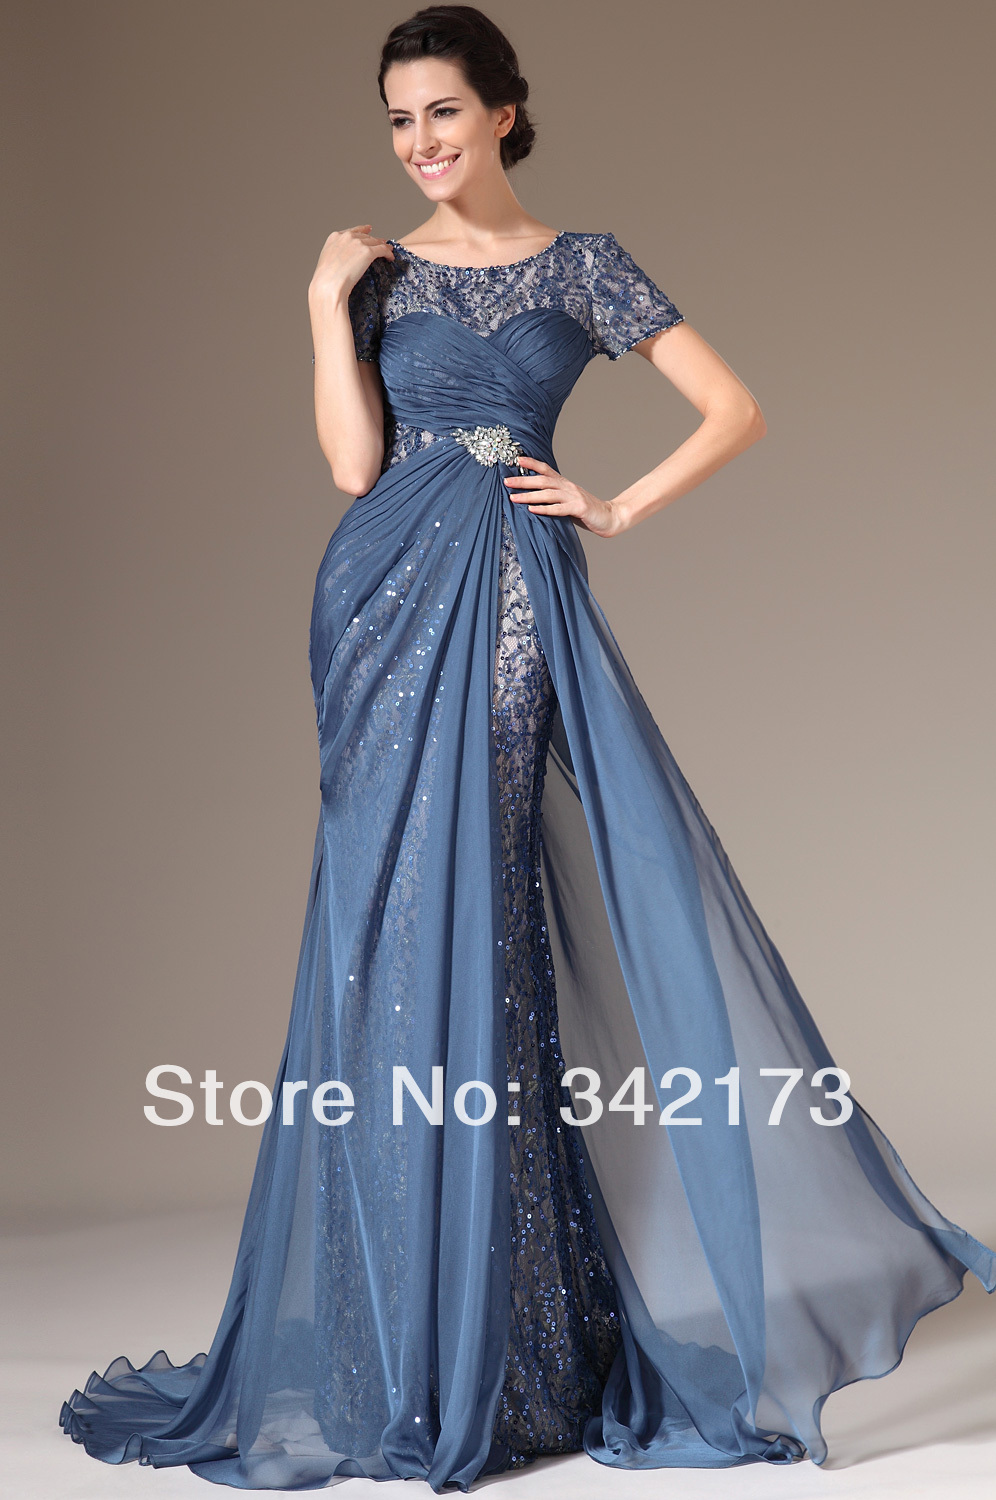 Short Sleeves Evening Formal Gown Ruched Chiffon Floor Length Navy ...